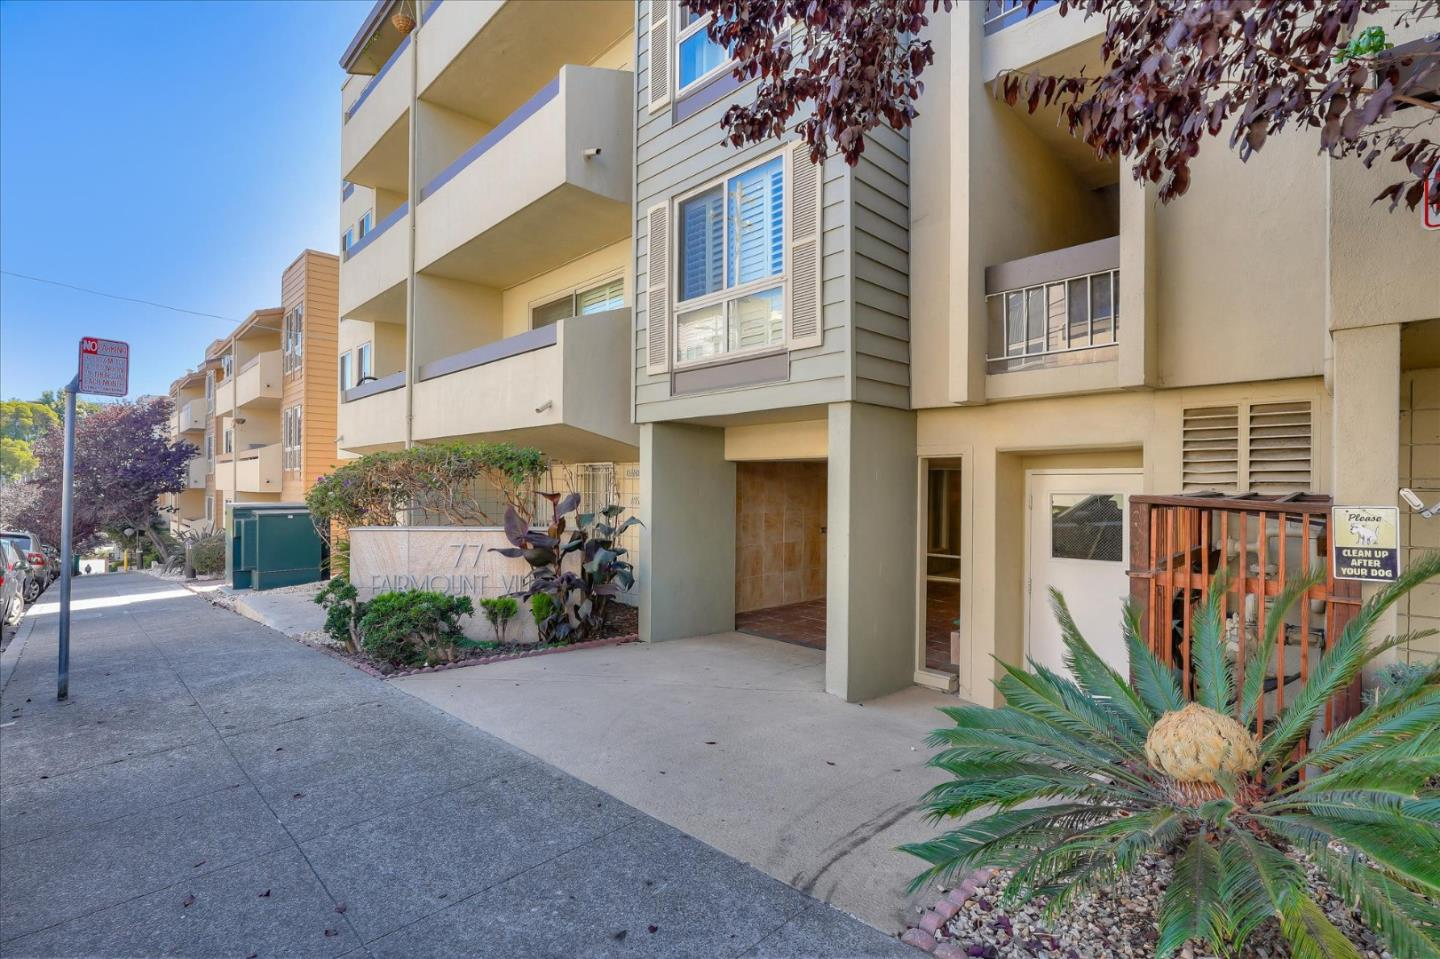 Bright, ample sized, end-unit 1 bedroom condo located nearby all of the amenities, shopping, freeways, SF ExpressBus and 19th St. BART station. The condo has an open floor plan with a private balcony facing the inner quad/swimming pool area.Biggest 1 bed floorplan in the complex. Kitchen has granite counter tops with stainless steel appliances and plenty of cabinets.Bedroom is airy and bright with mirrored closets and the bathroom has granite counter top and tiled shower/tub combo.